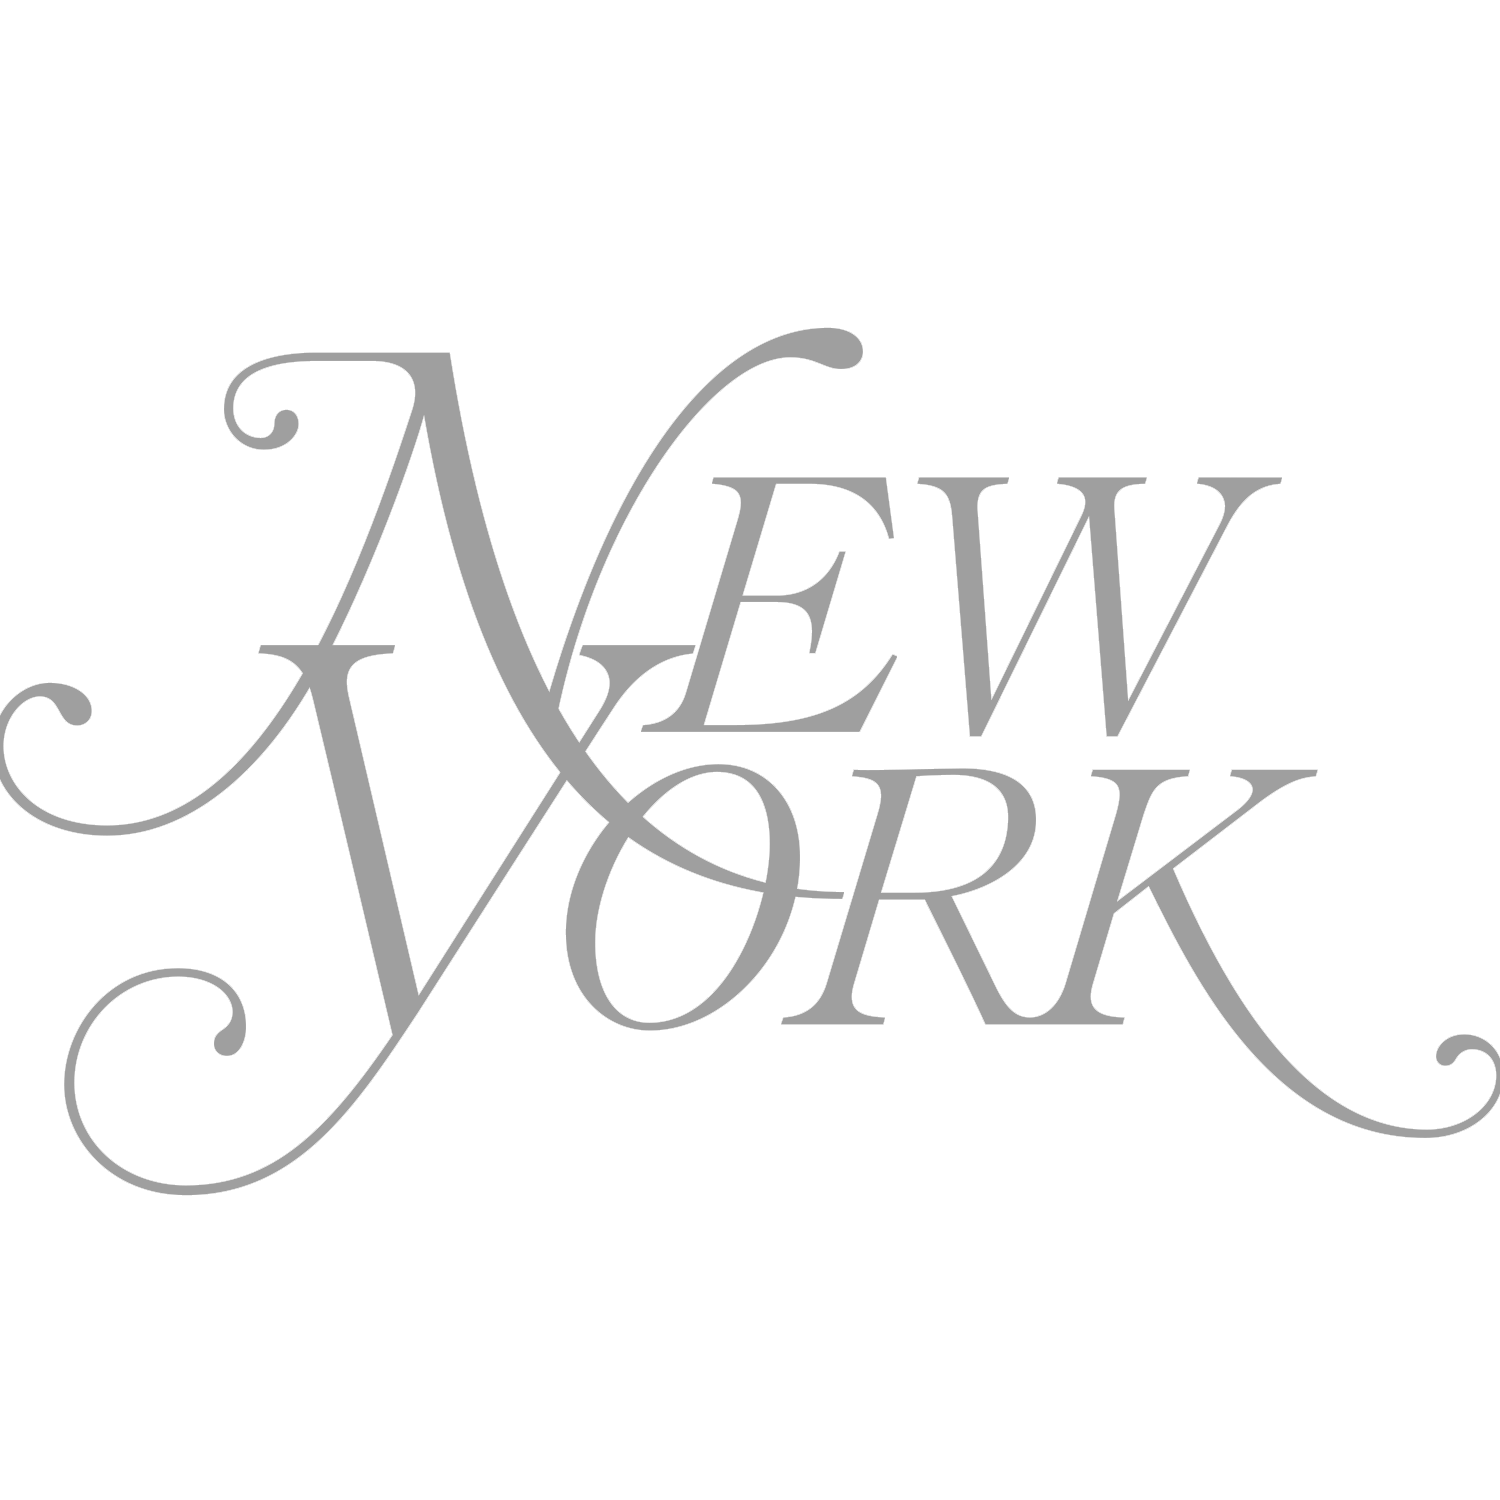 nymag-1500x1500 gray 2.png